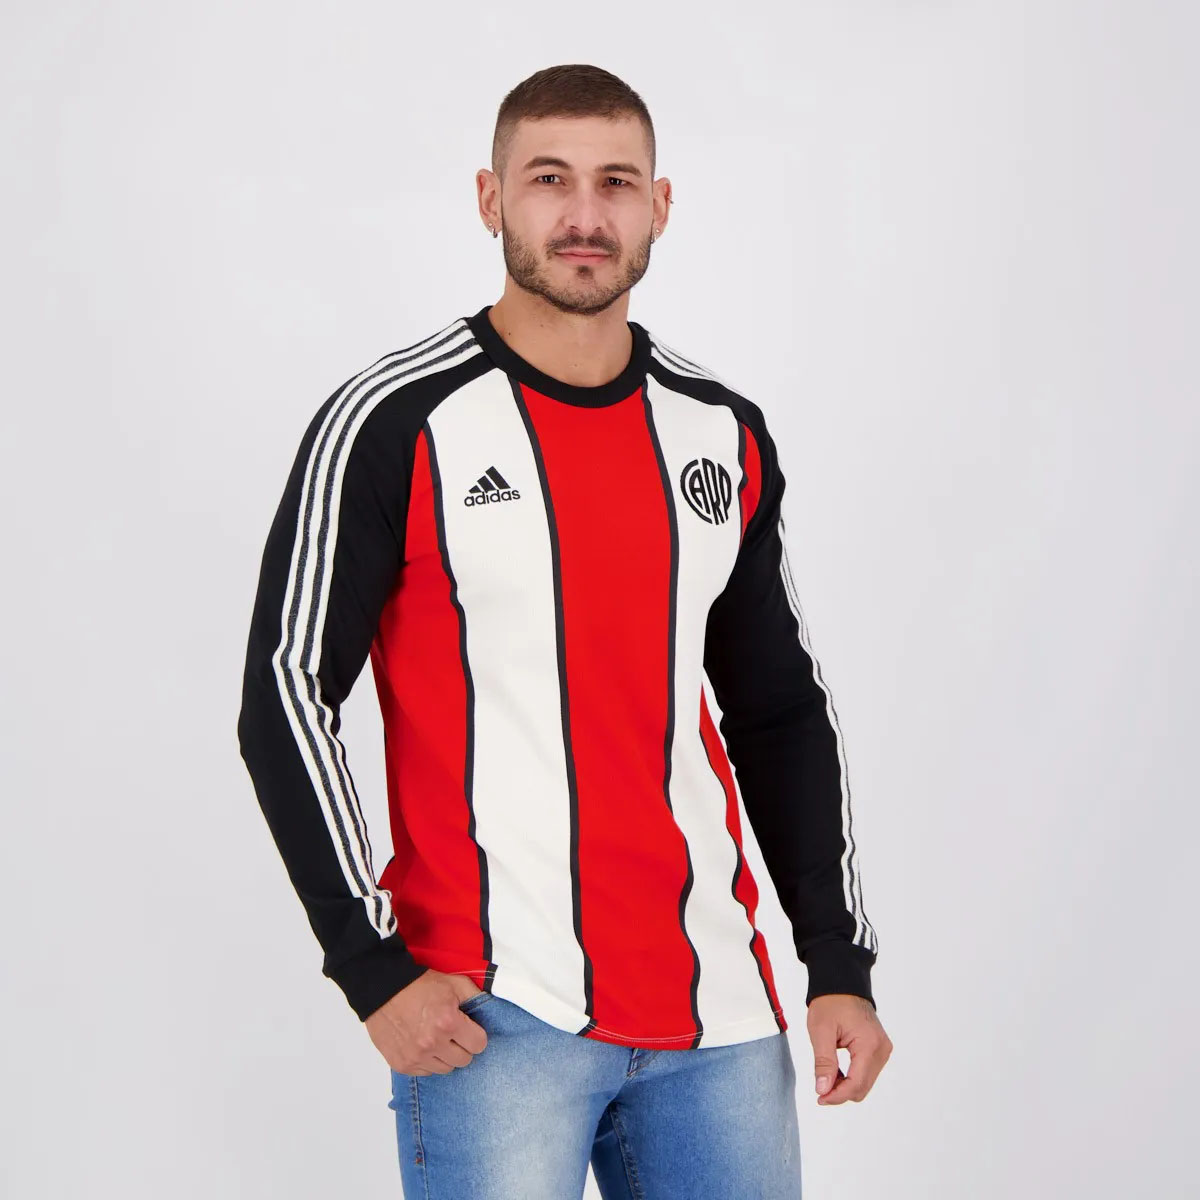 Camisa Icon do River Plate 2021 Adidas